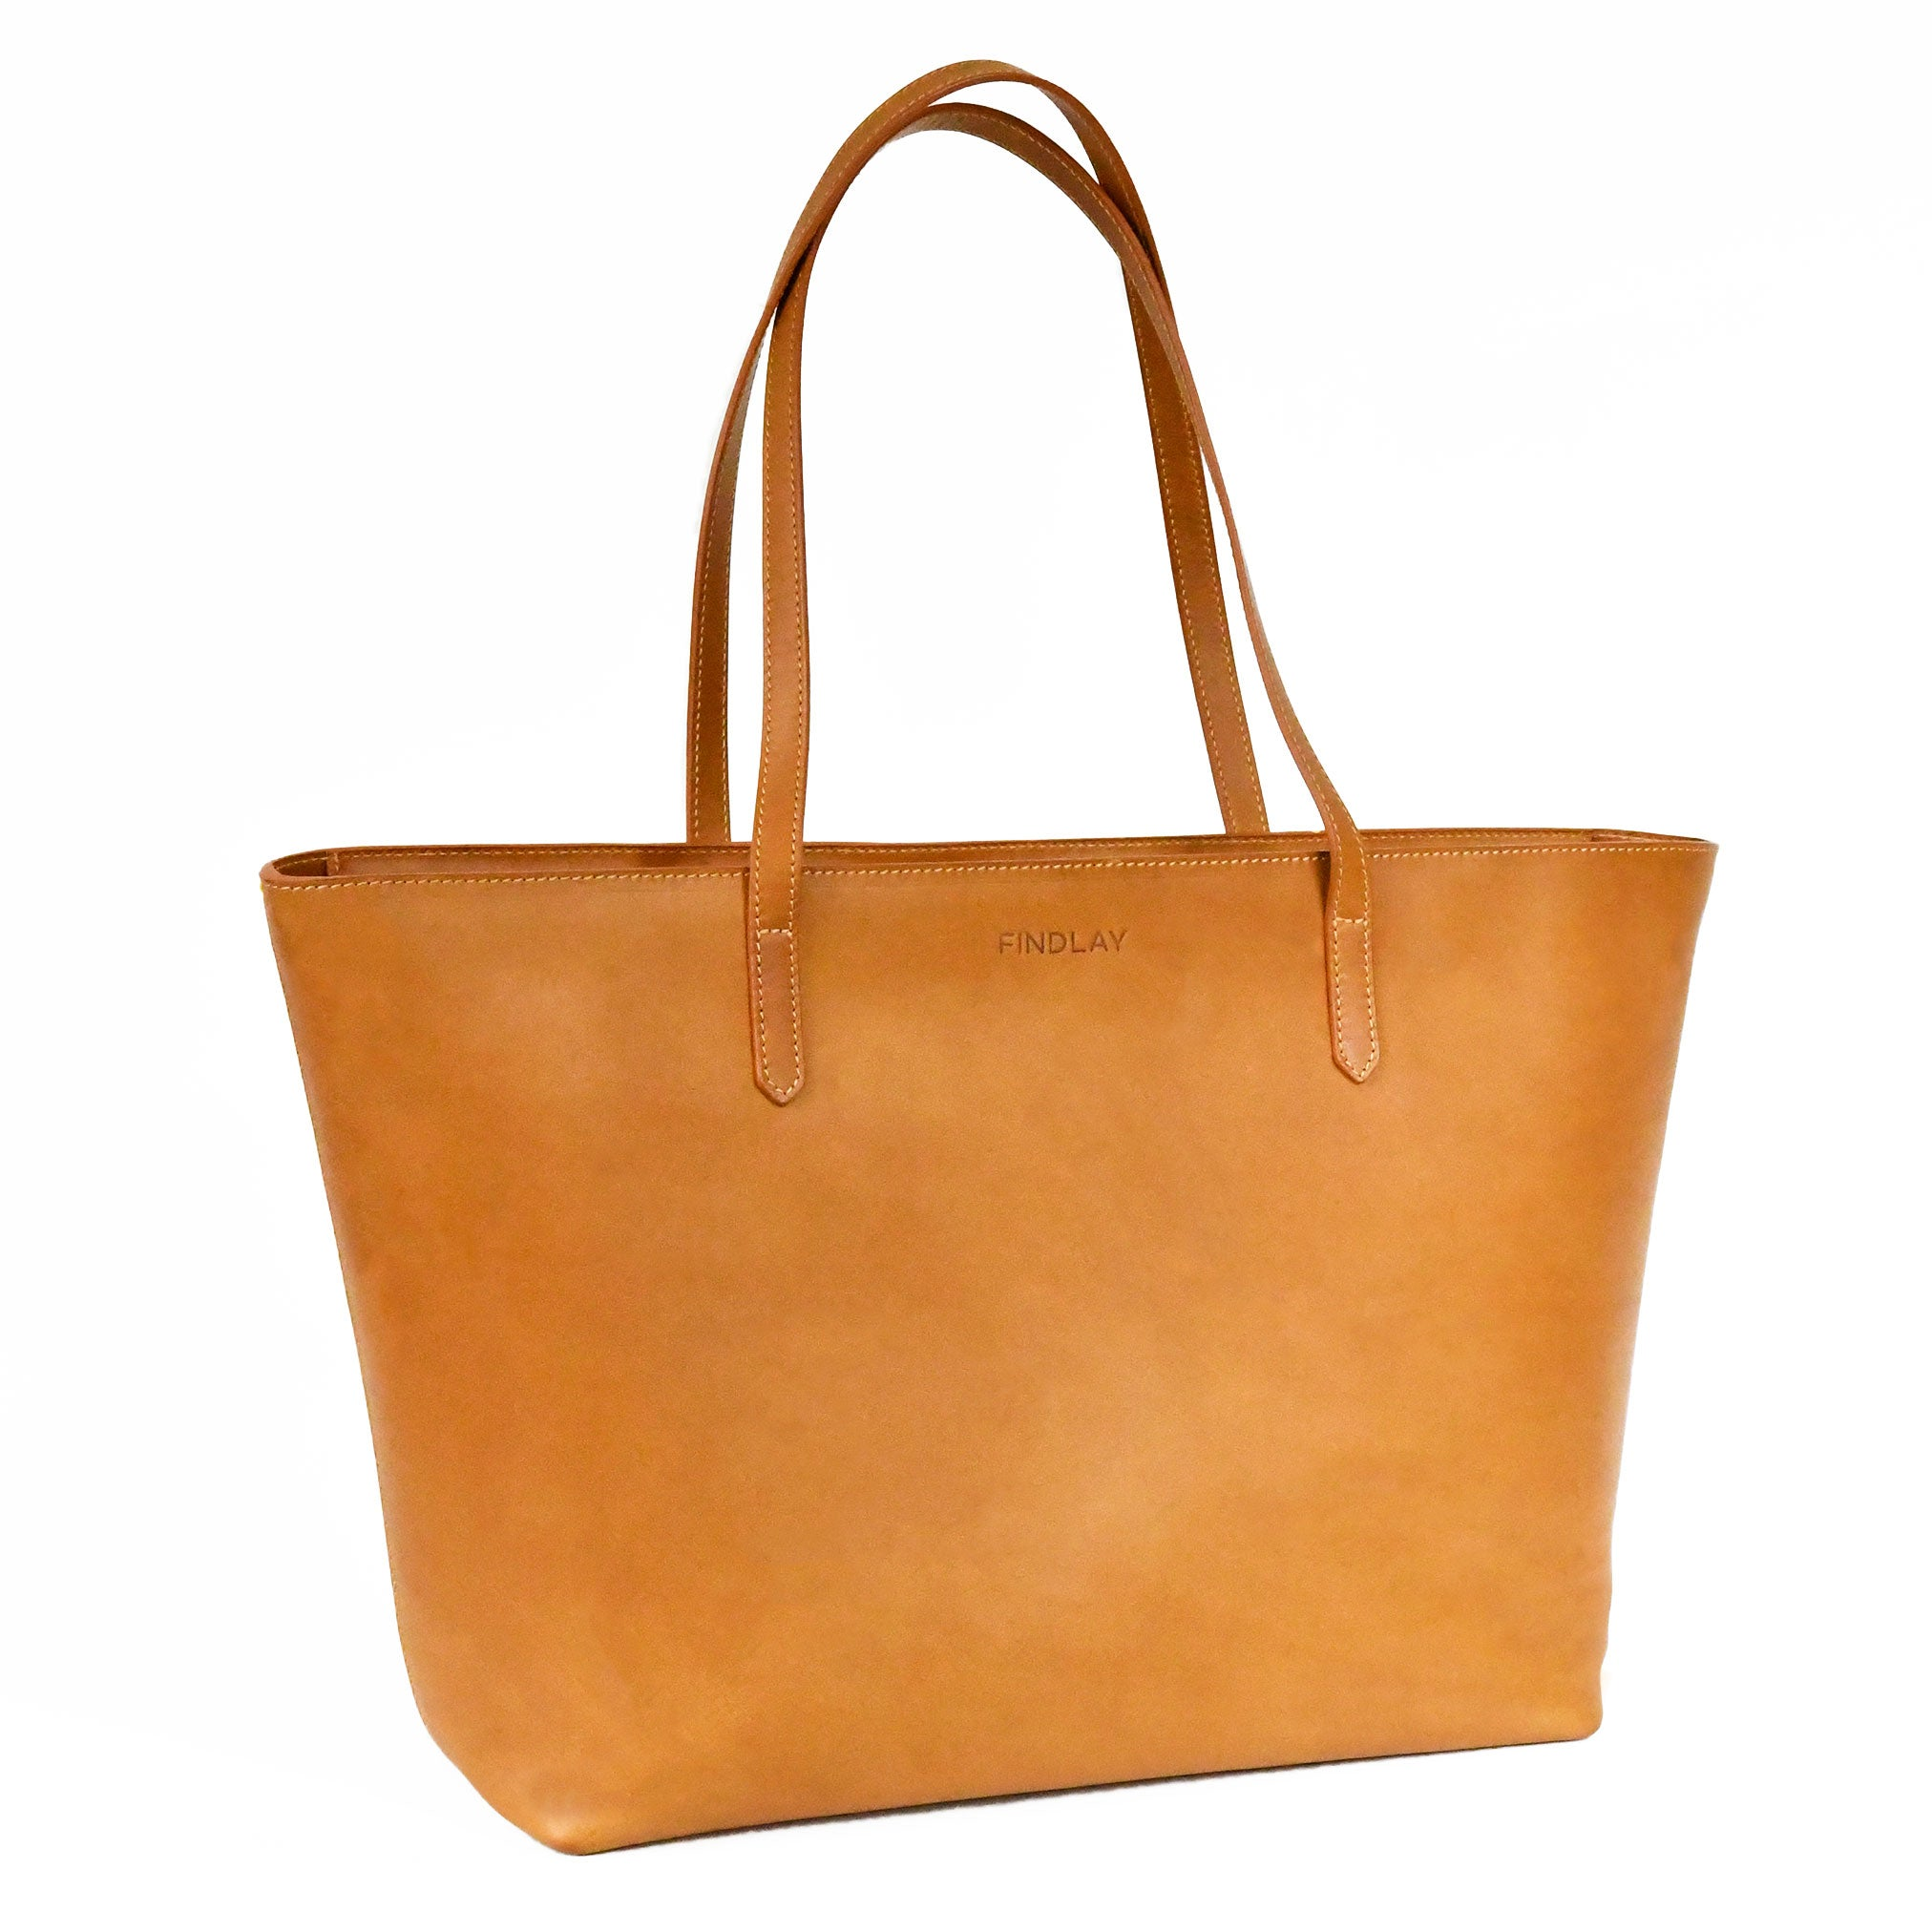 East-West Tote, Camel